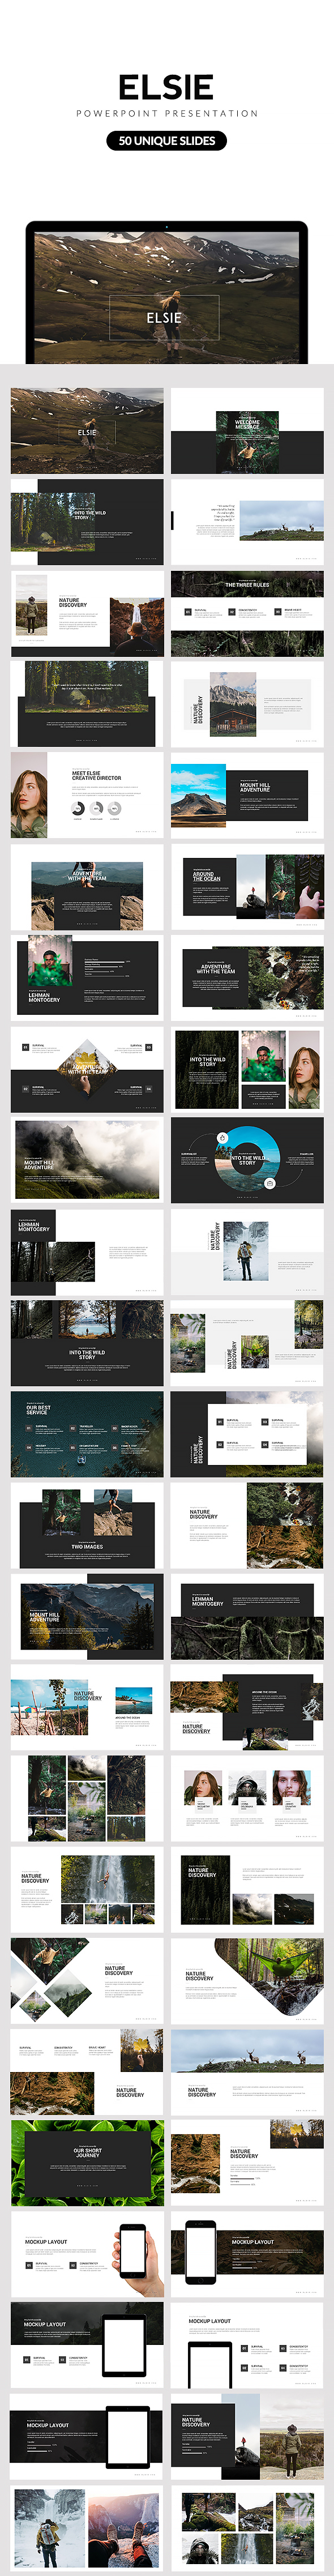 Elsie Powerpoint Presentation - Creative PowerPoint Templates